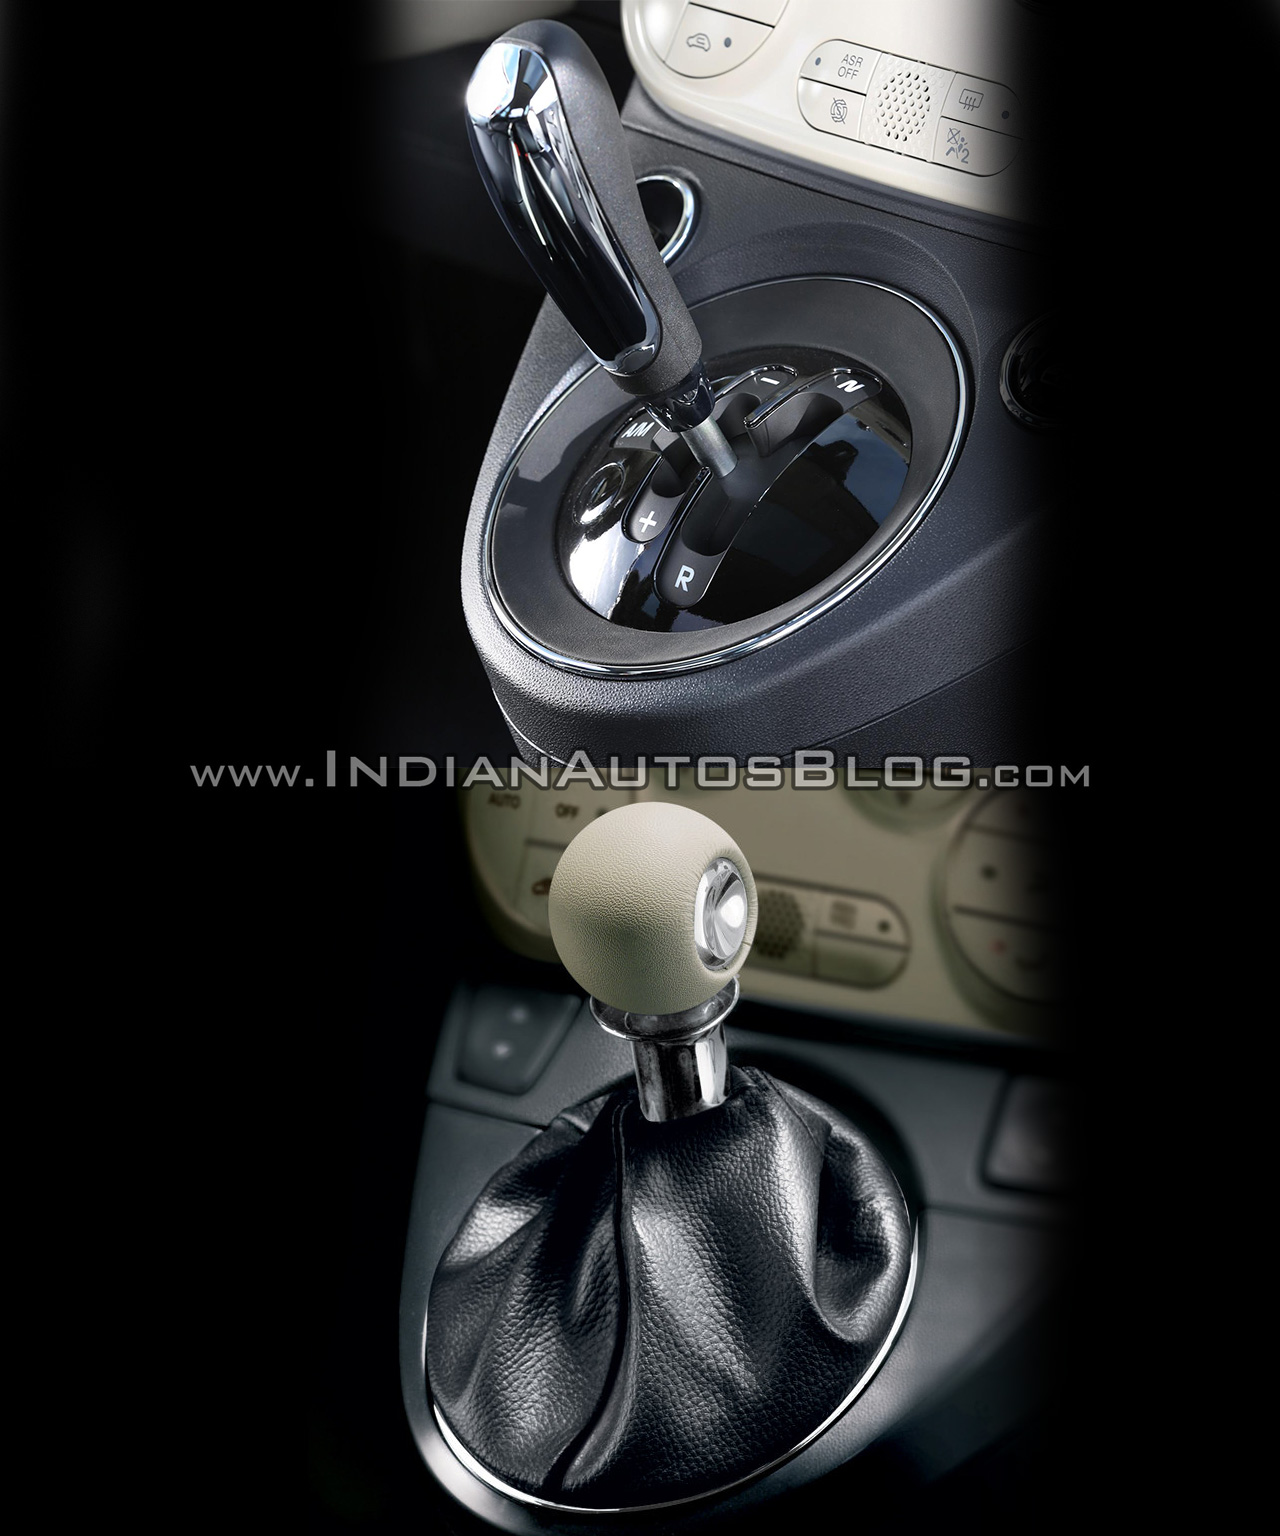 2016 Fiat 500 (facelift) vs 2007 Fiat 500 gear shifter Old vs New